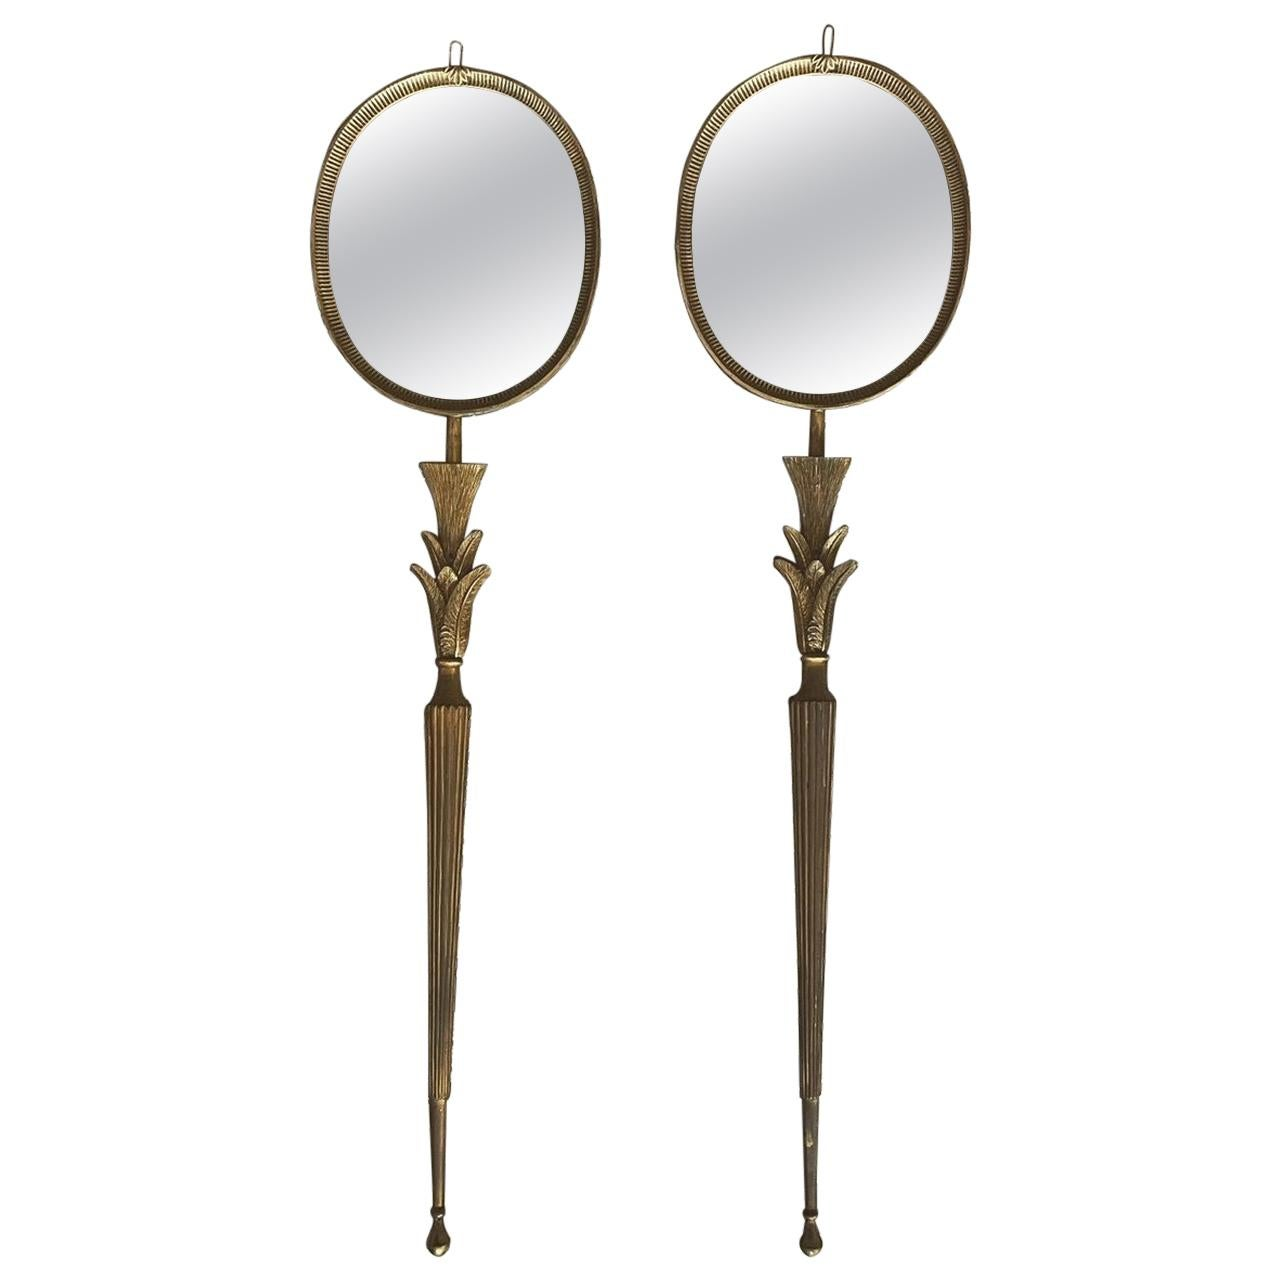 Pair of French Art Deco Mirrors/Sconces